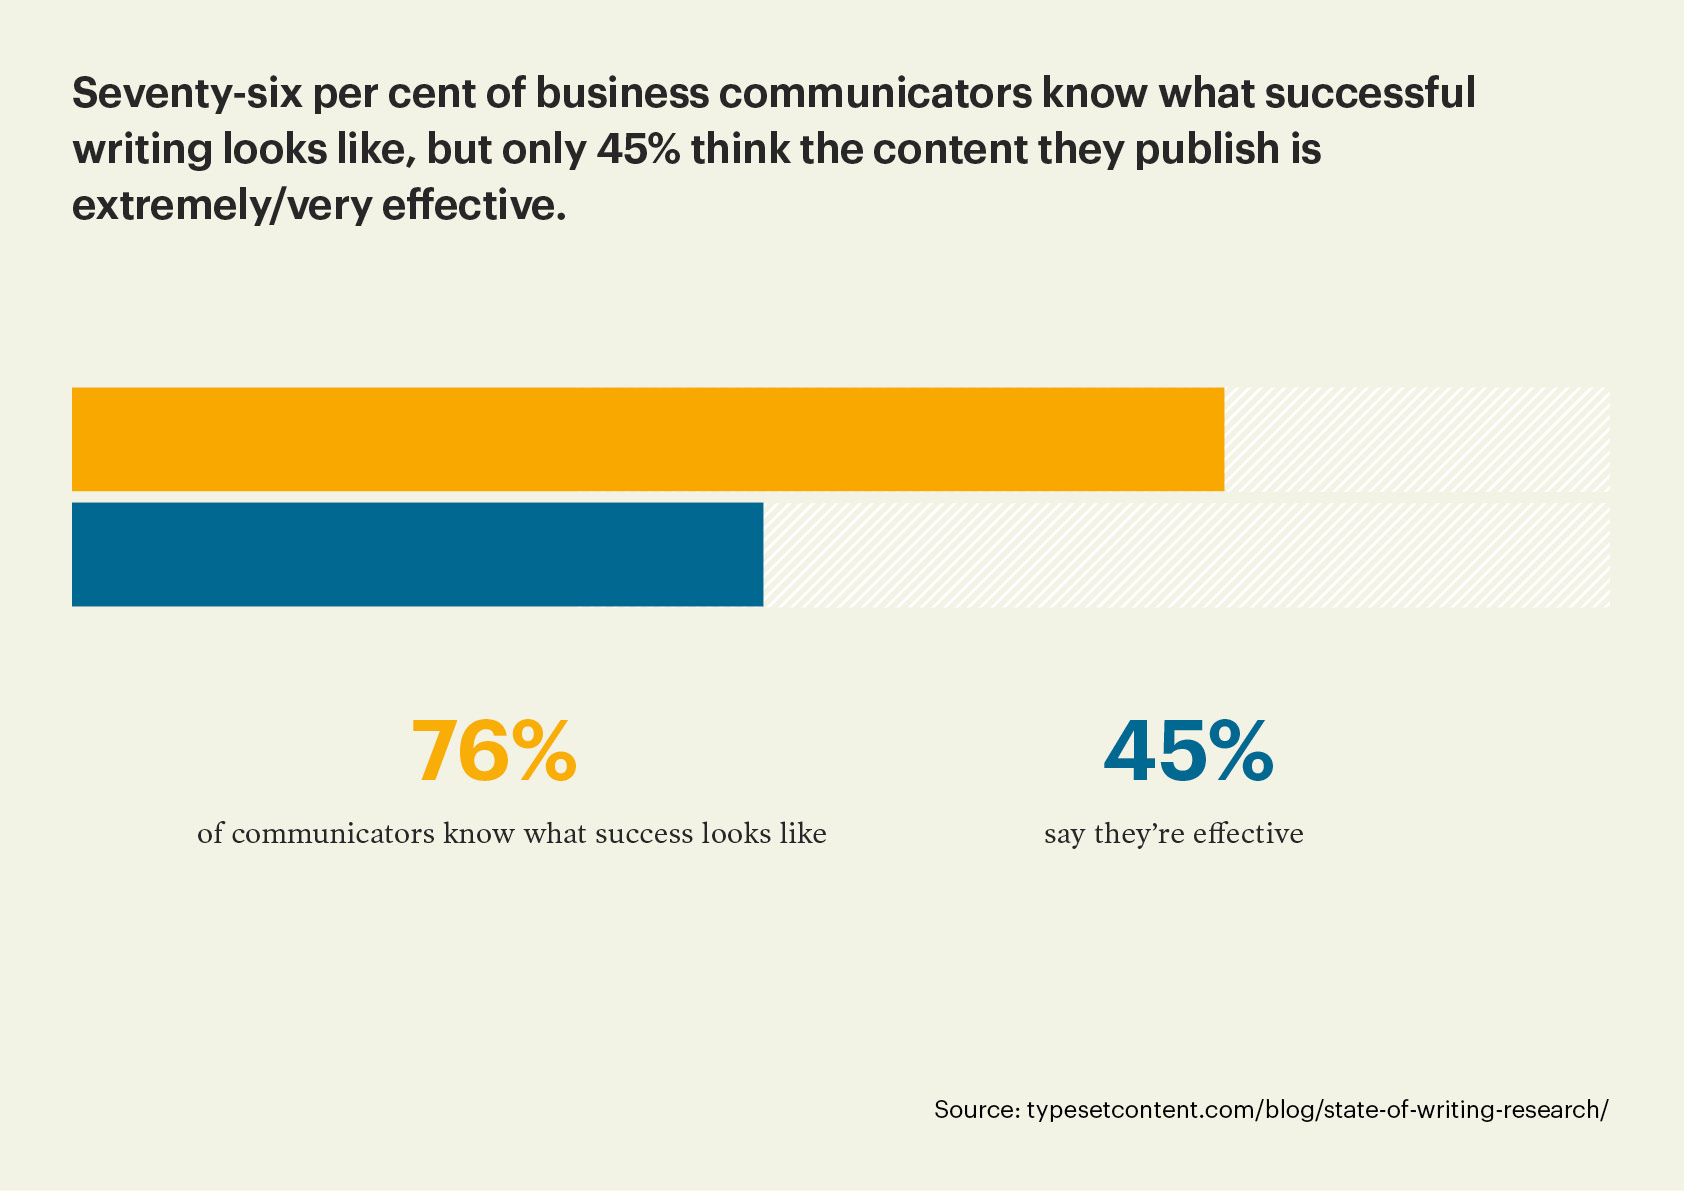 Bar graph showing 76% of business communicators know what successful writing looks like, but only 45% are experiencing it.